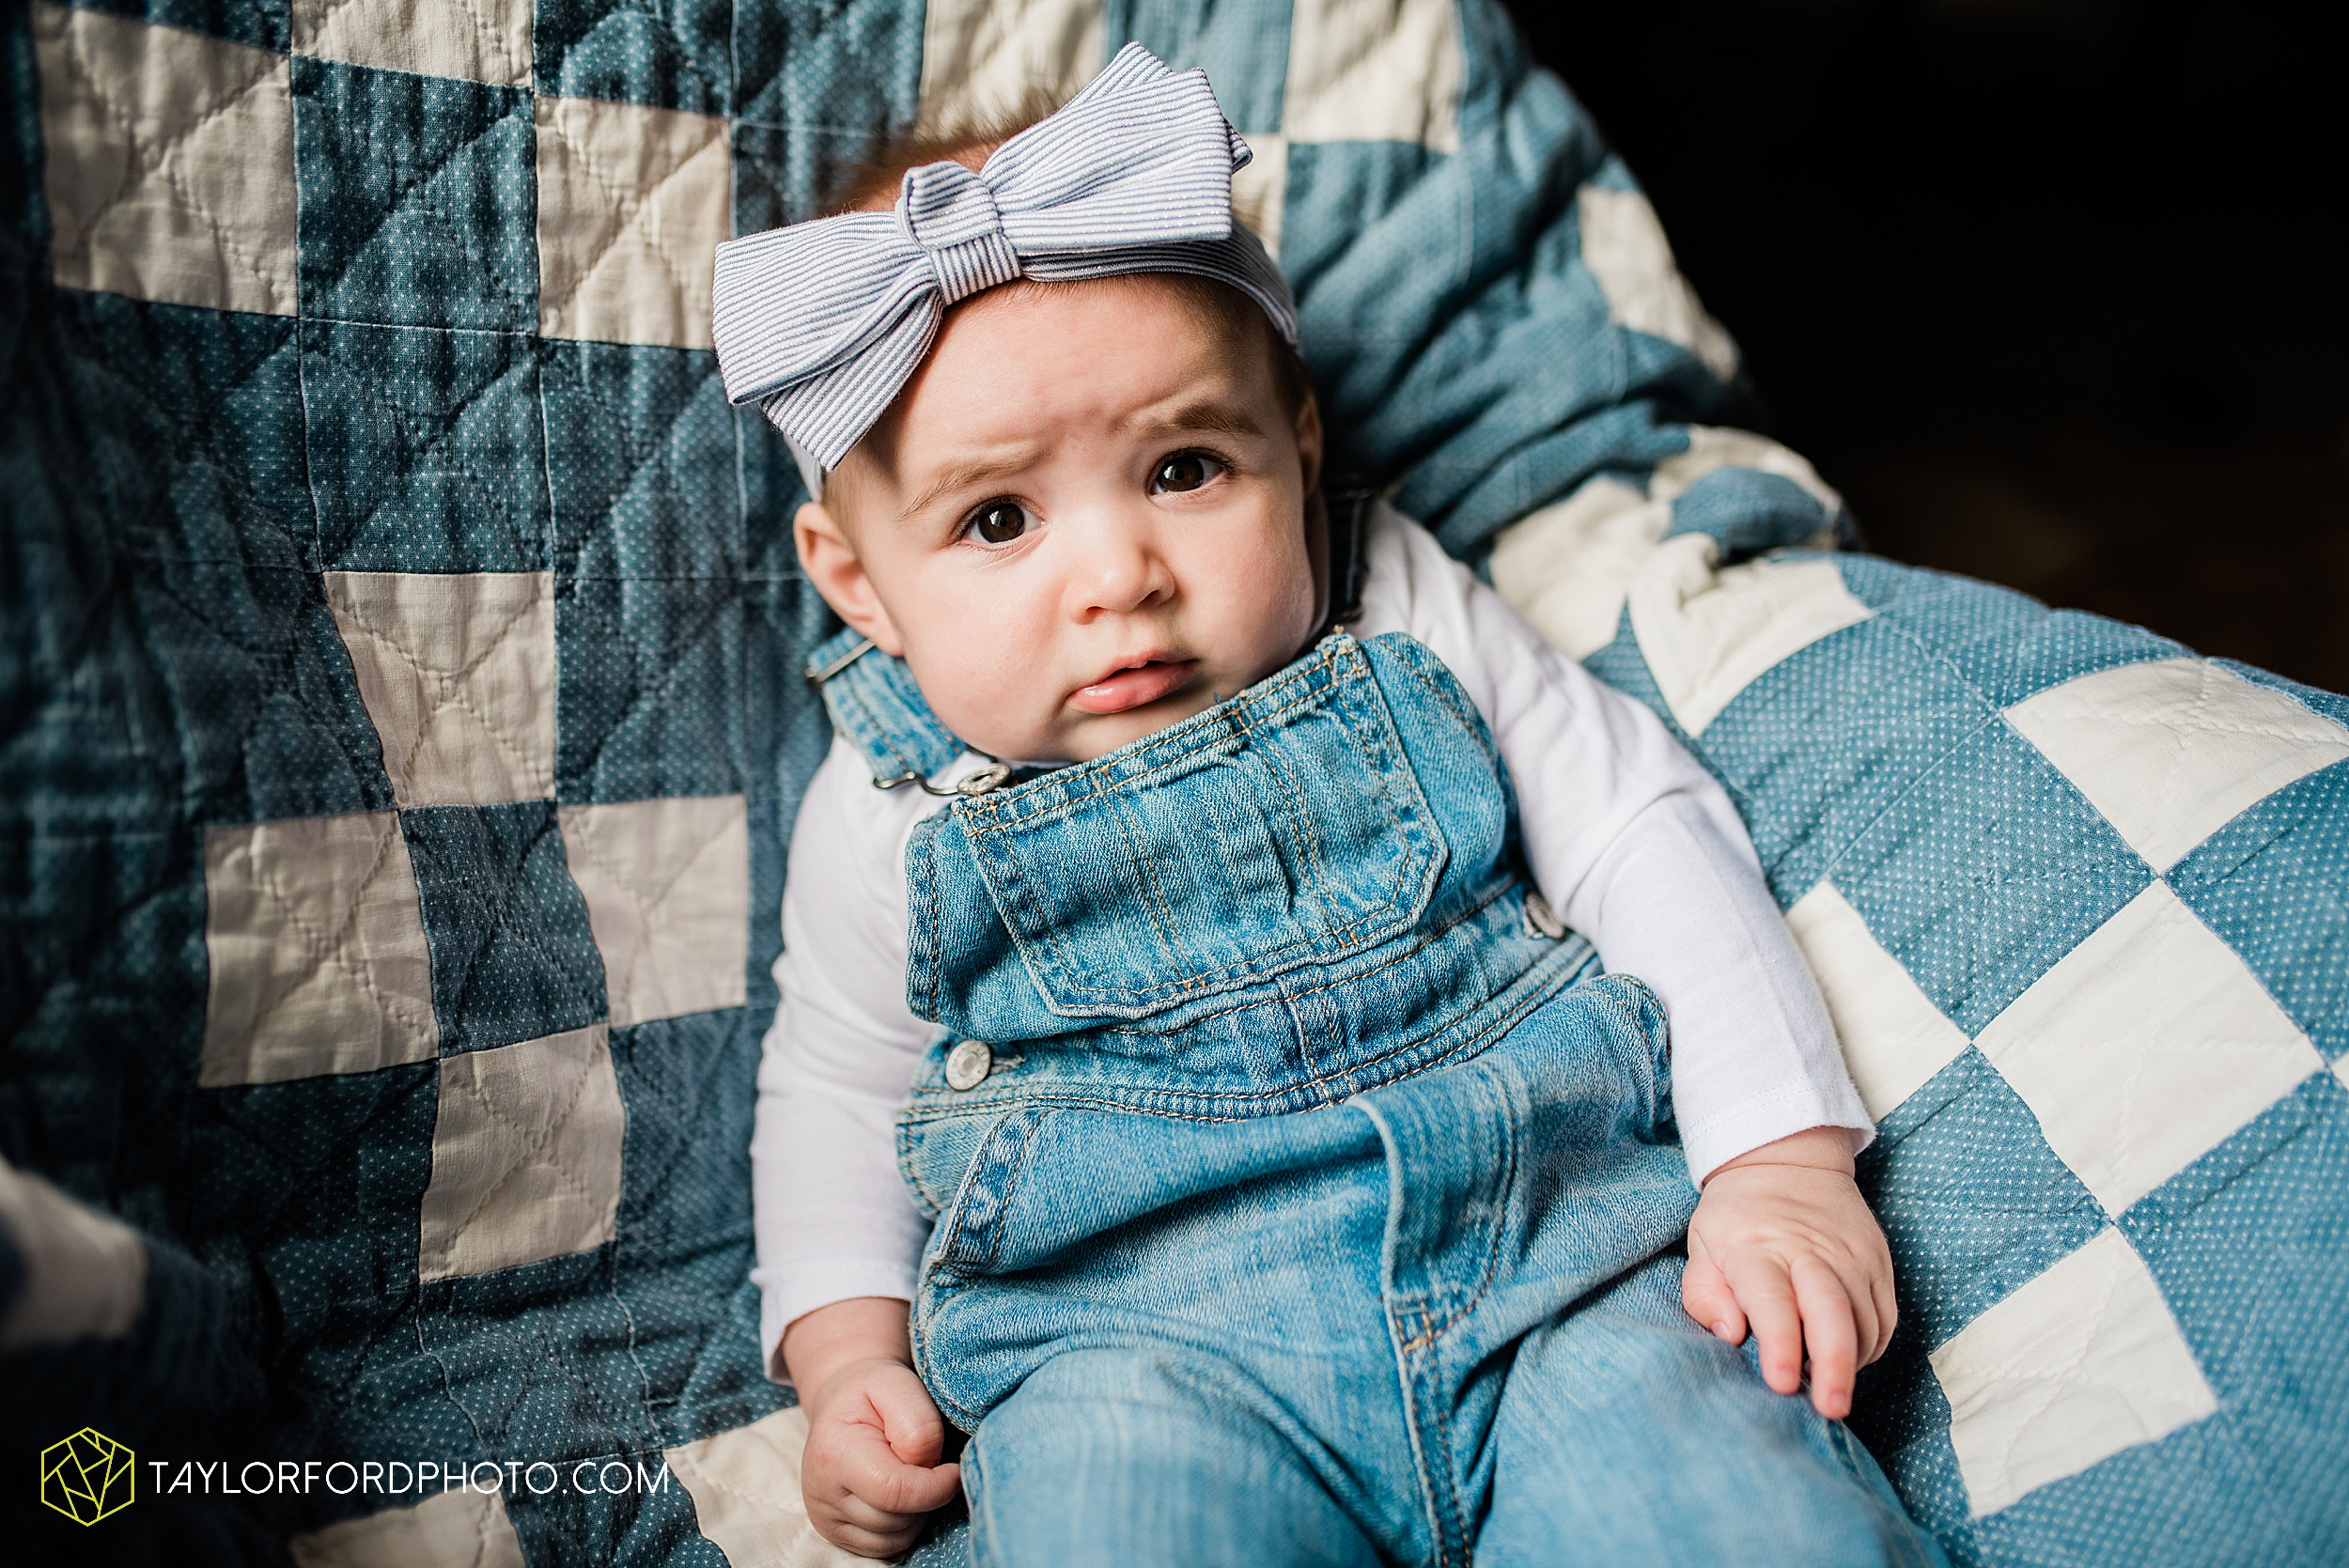 austin-texas-newborn-family-at-home-farm-hiestand-woods-van-wert-county-ohio-farm-family-photography-taylor-ford-hirschy-photographer_3488.jpg